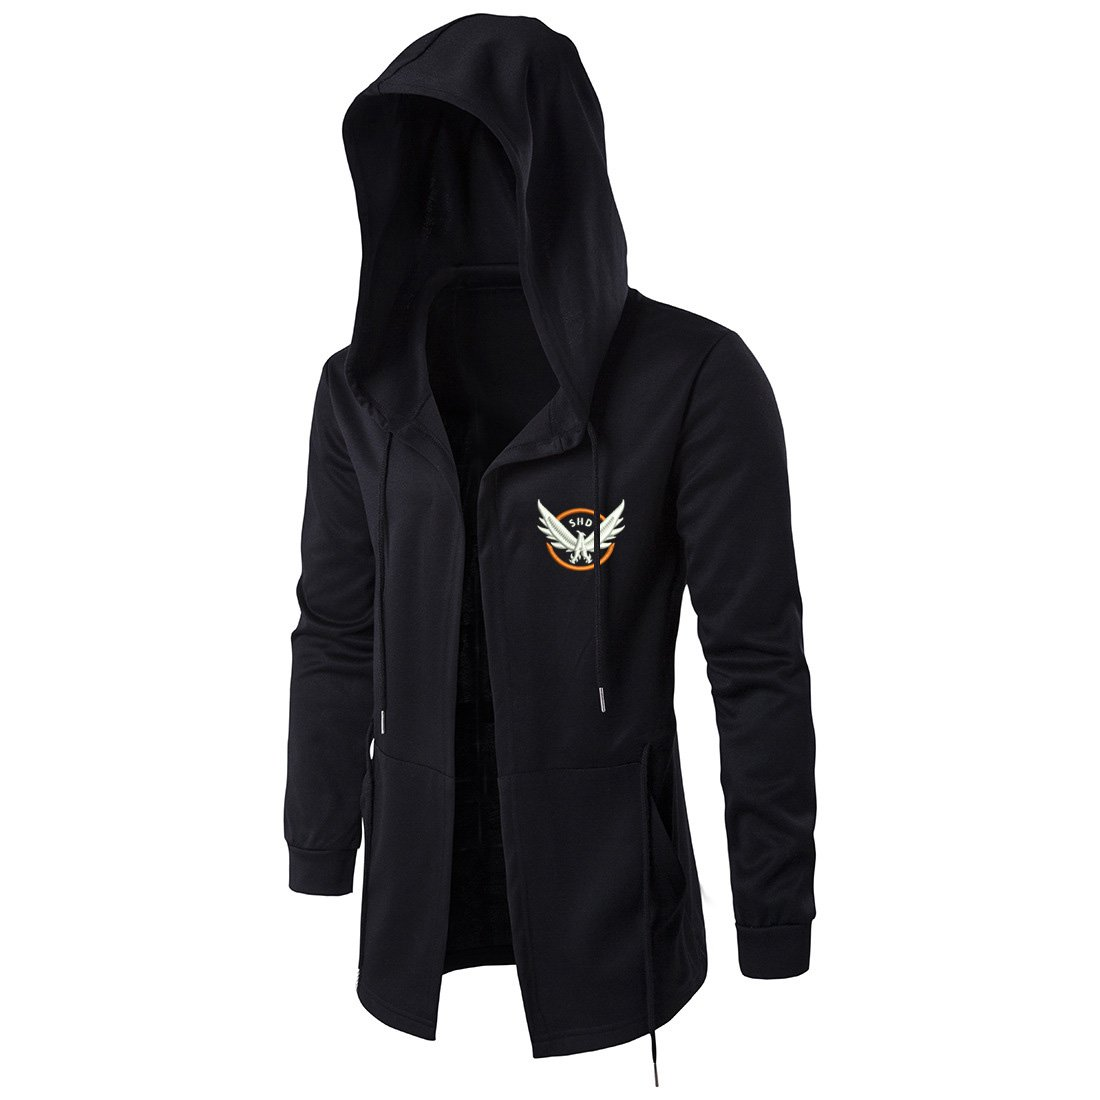 Tom Clancy's The Division Embroidery Hooded Cosplay Costume Men Coat